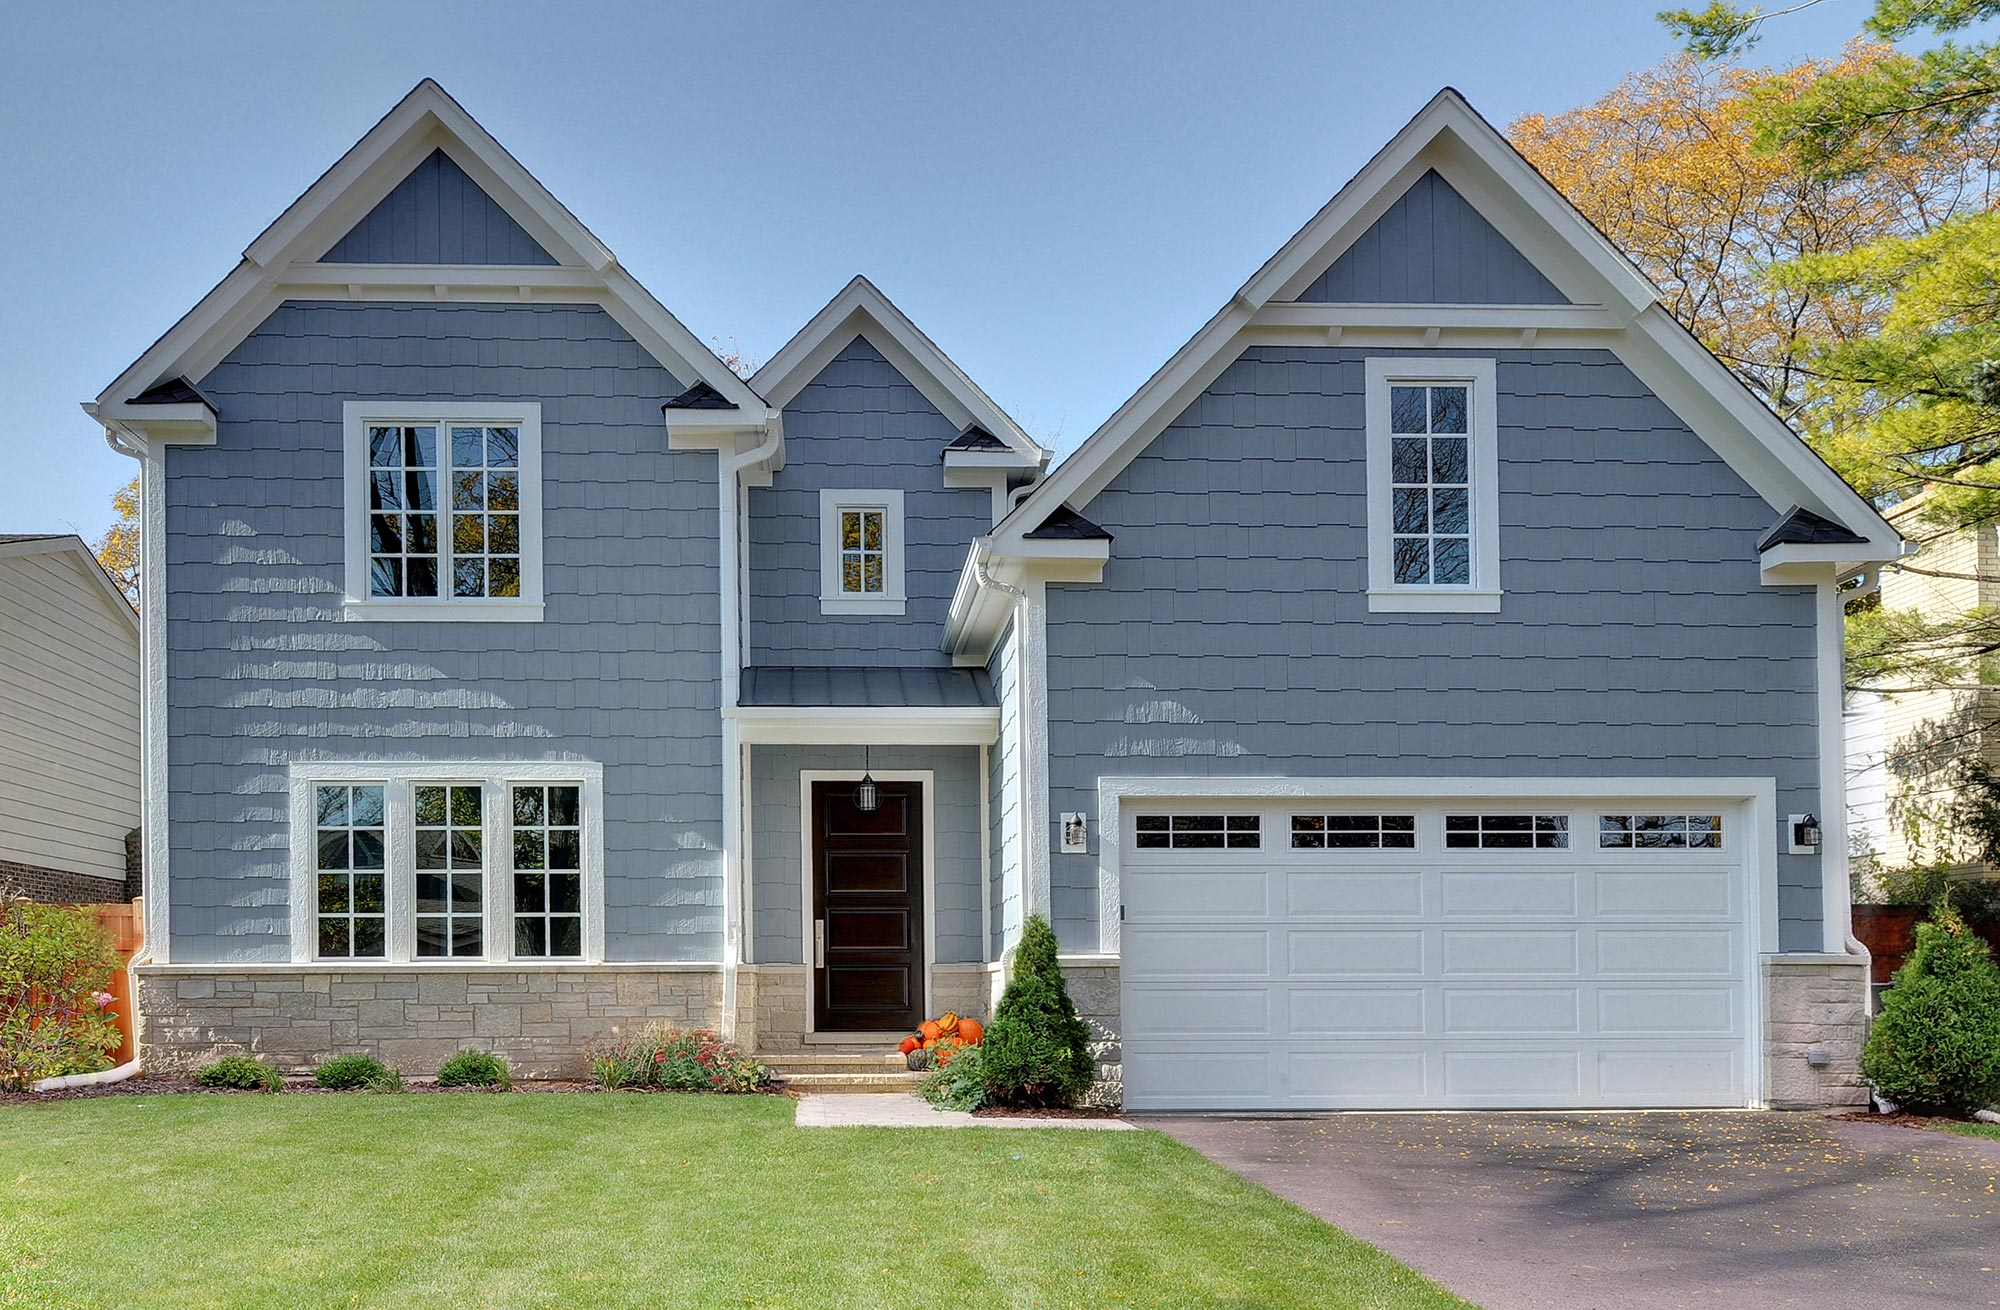 17 Best Portico ideas images in 2013   House front